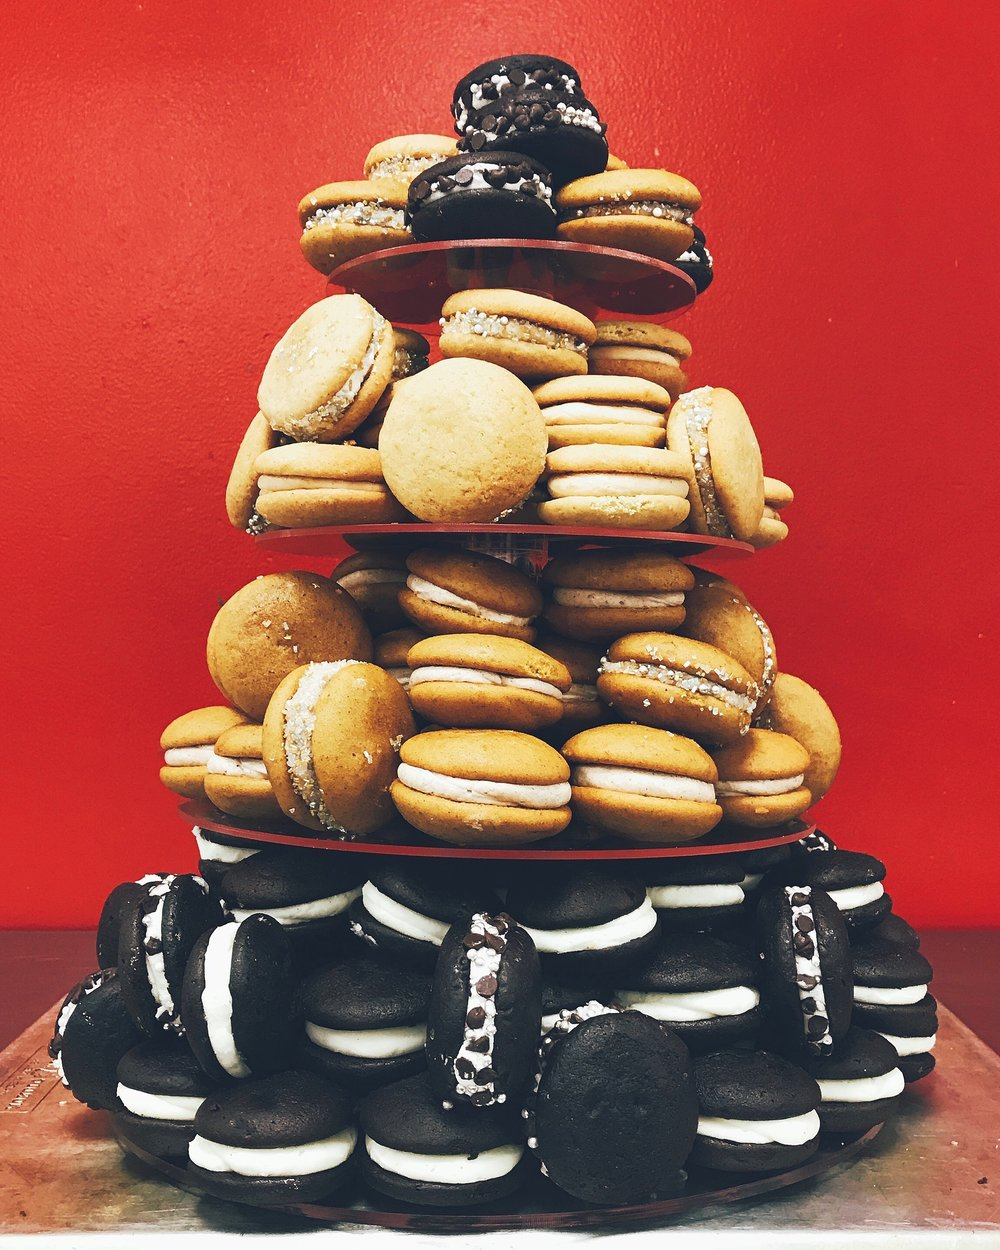 Whoopie For All!  - Be the party superhero and order a whoopie tier!Perfect for weddings, birthdays, and dessert bars!